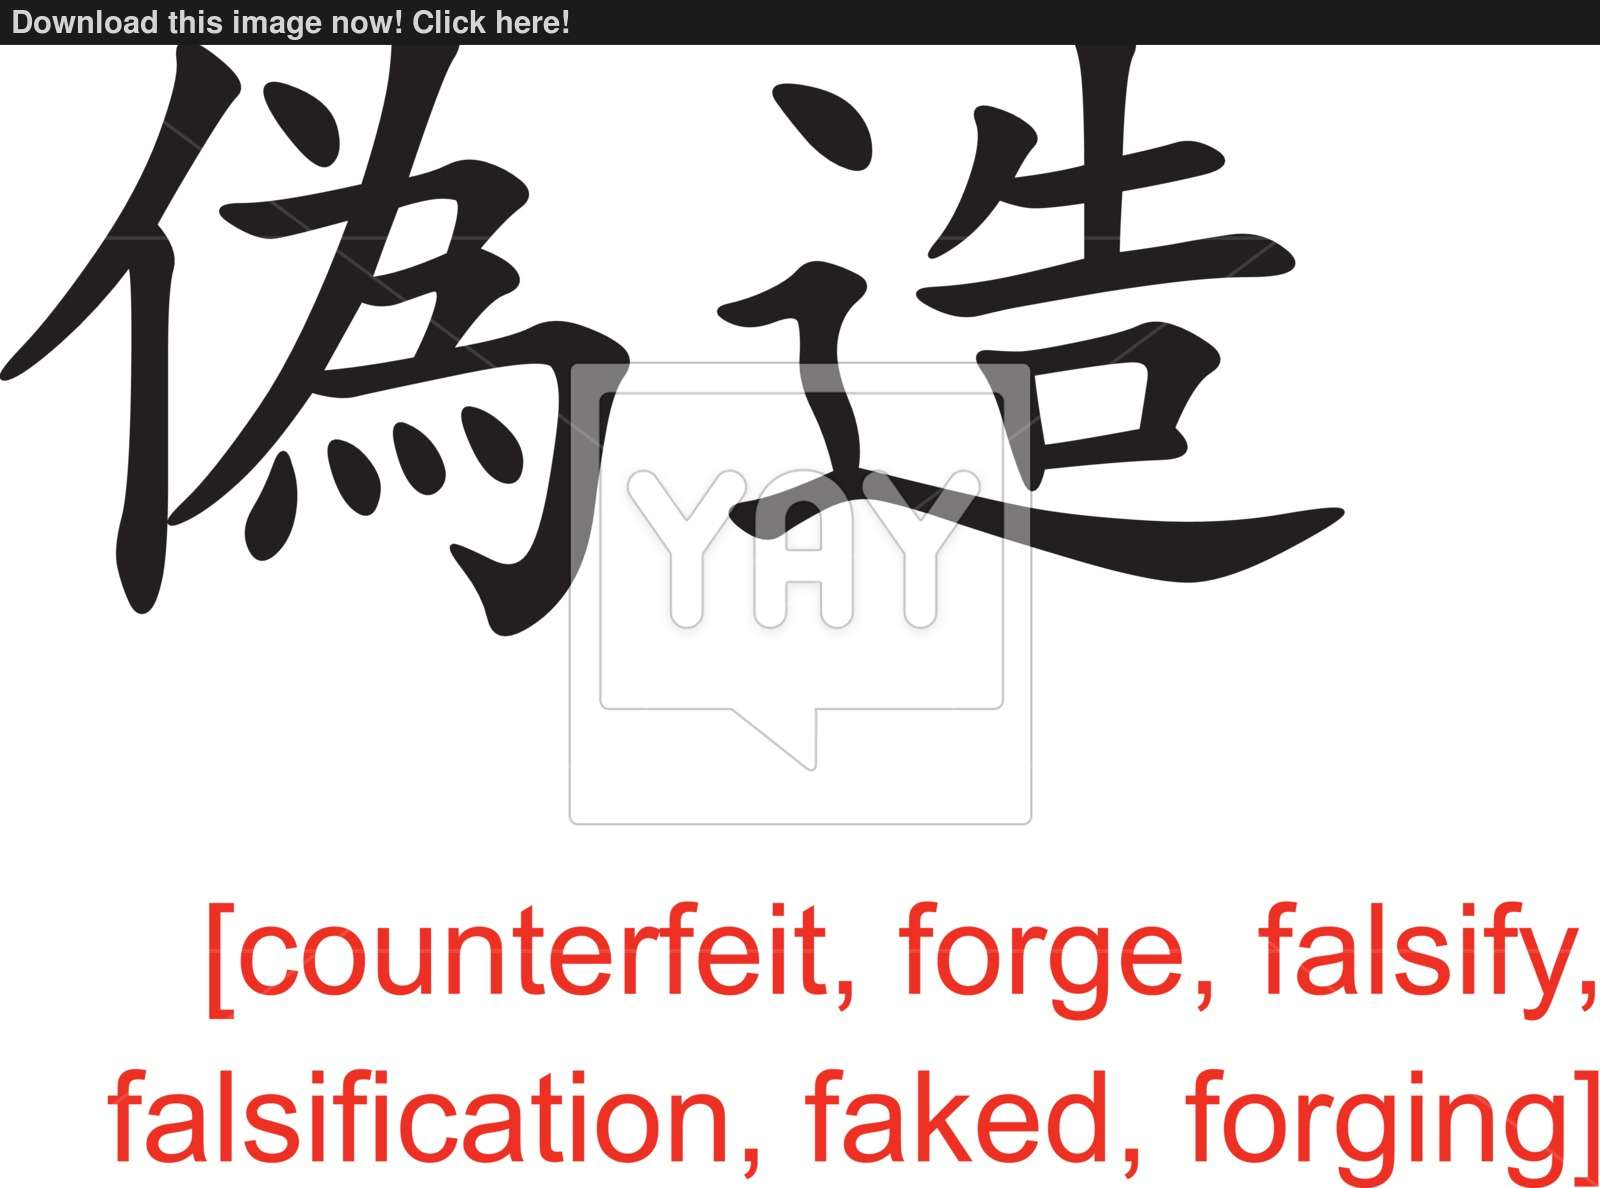 1600x1188 Chinese Sign For Counterfeit, Forge, Falsify, Falsification, Faked